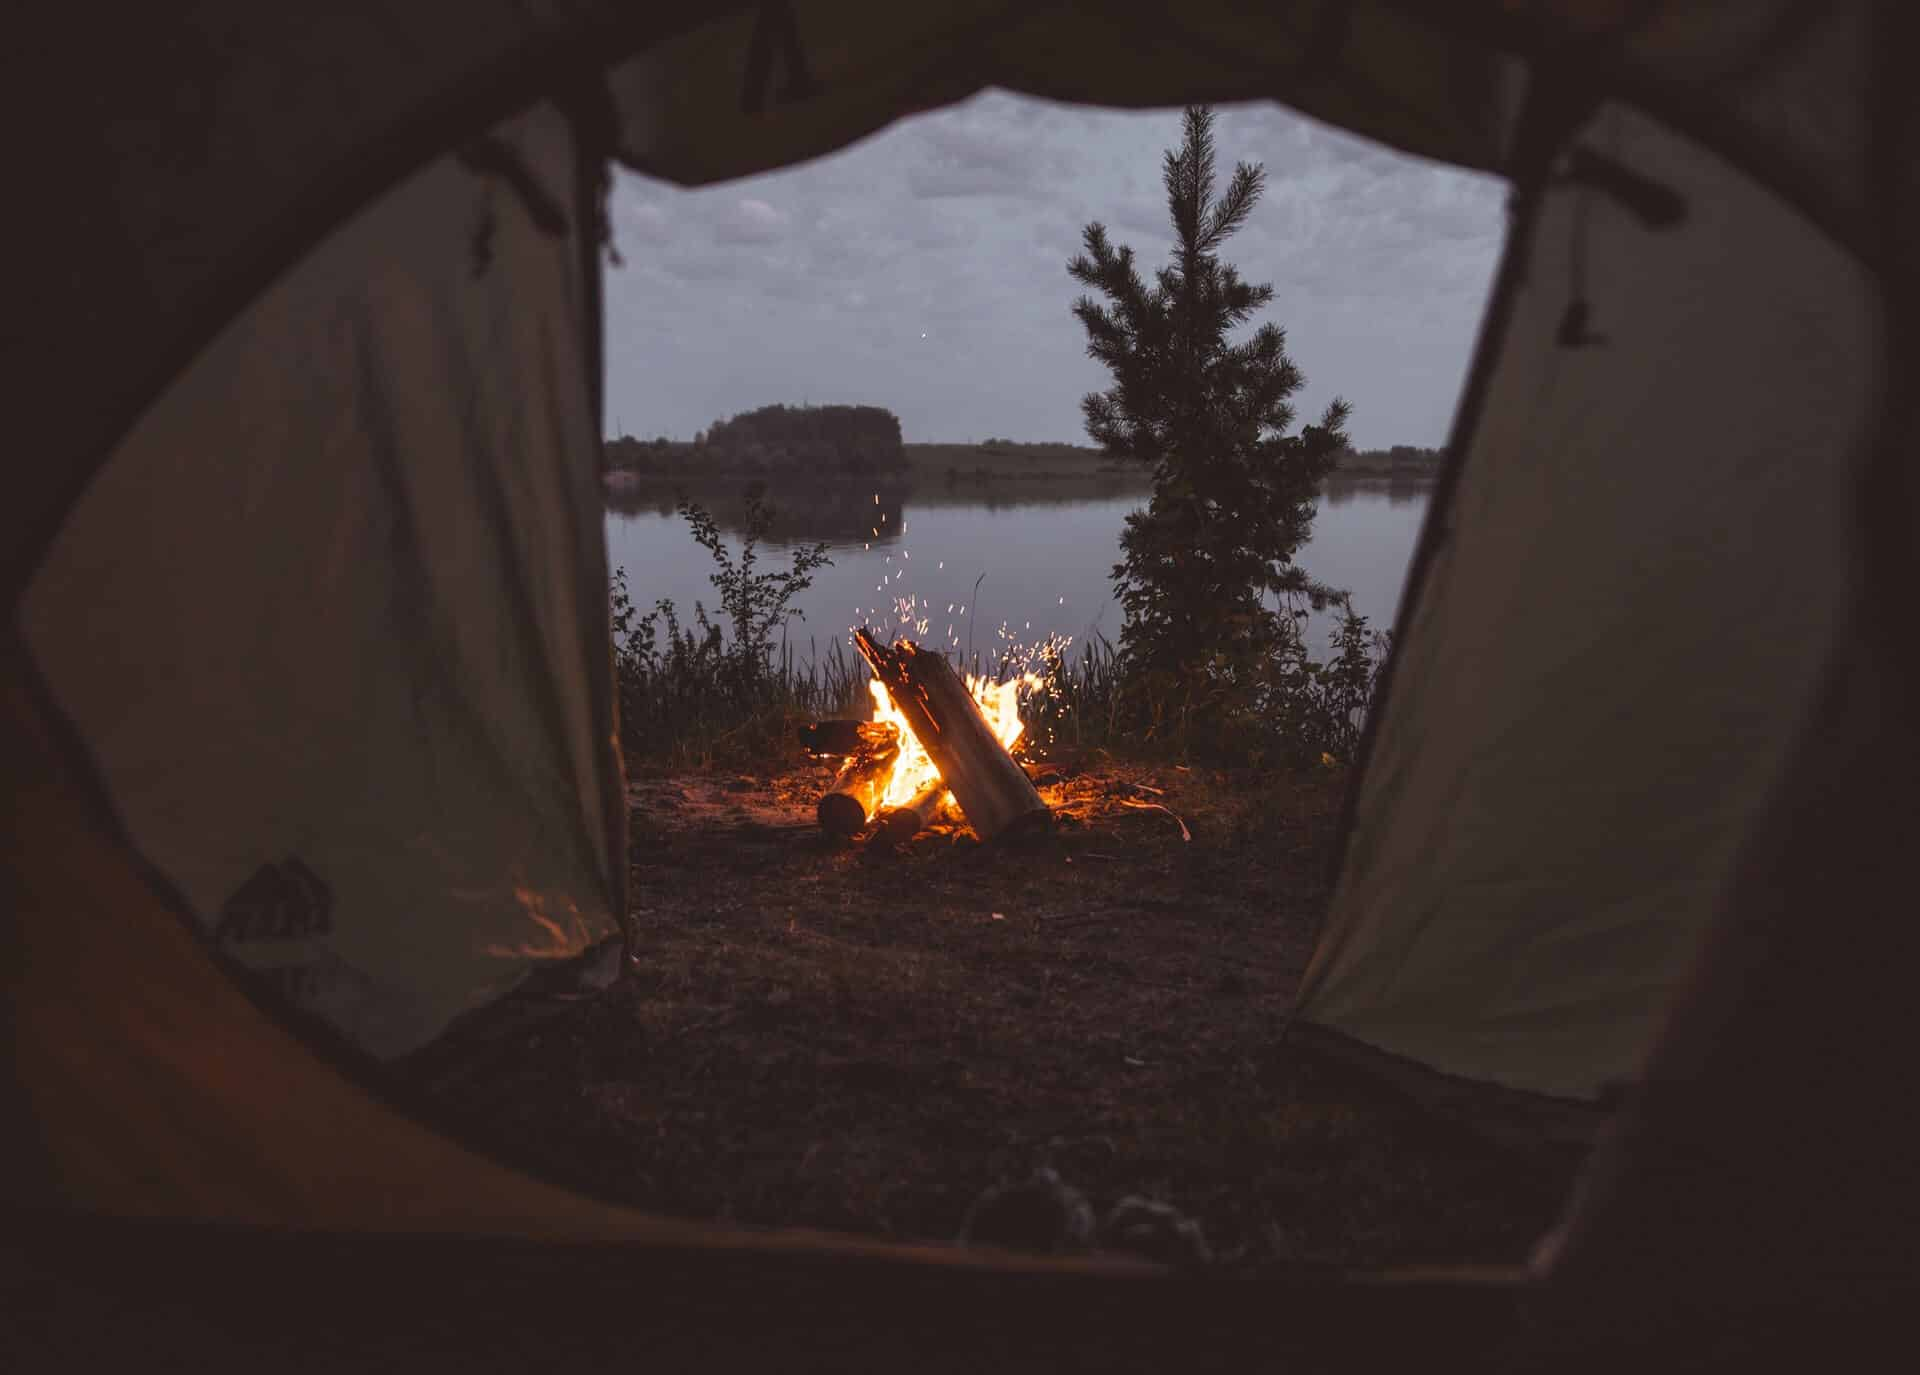 View through a two room tent to the outside